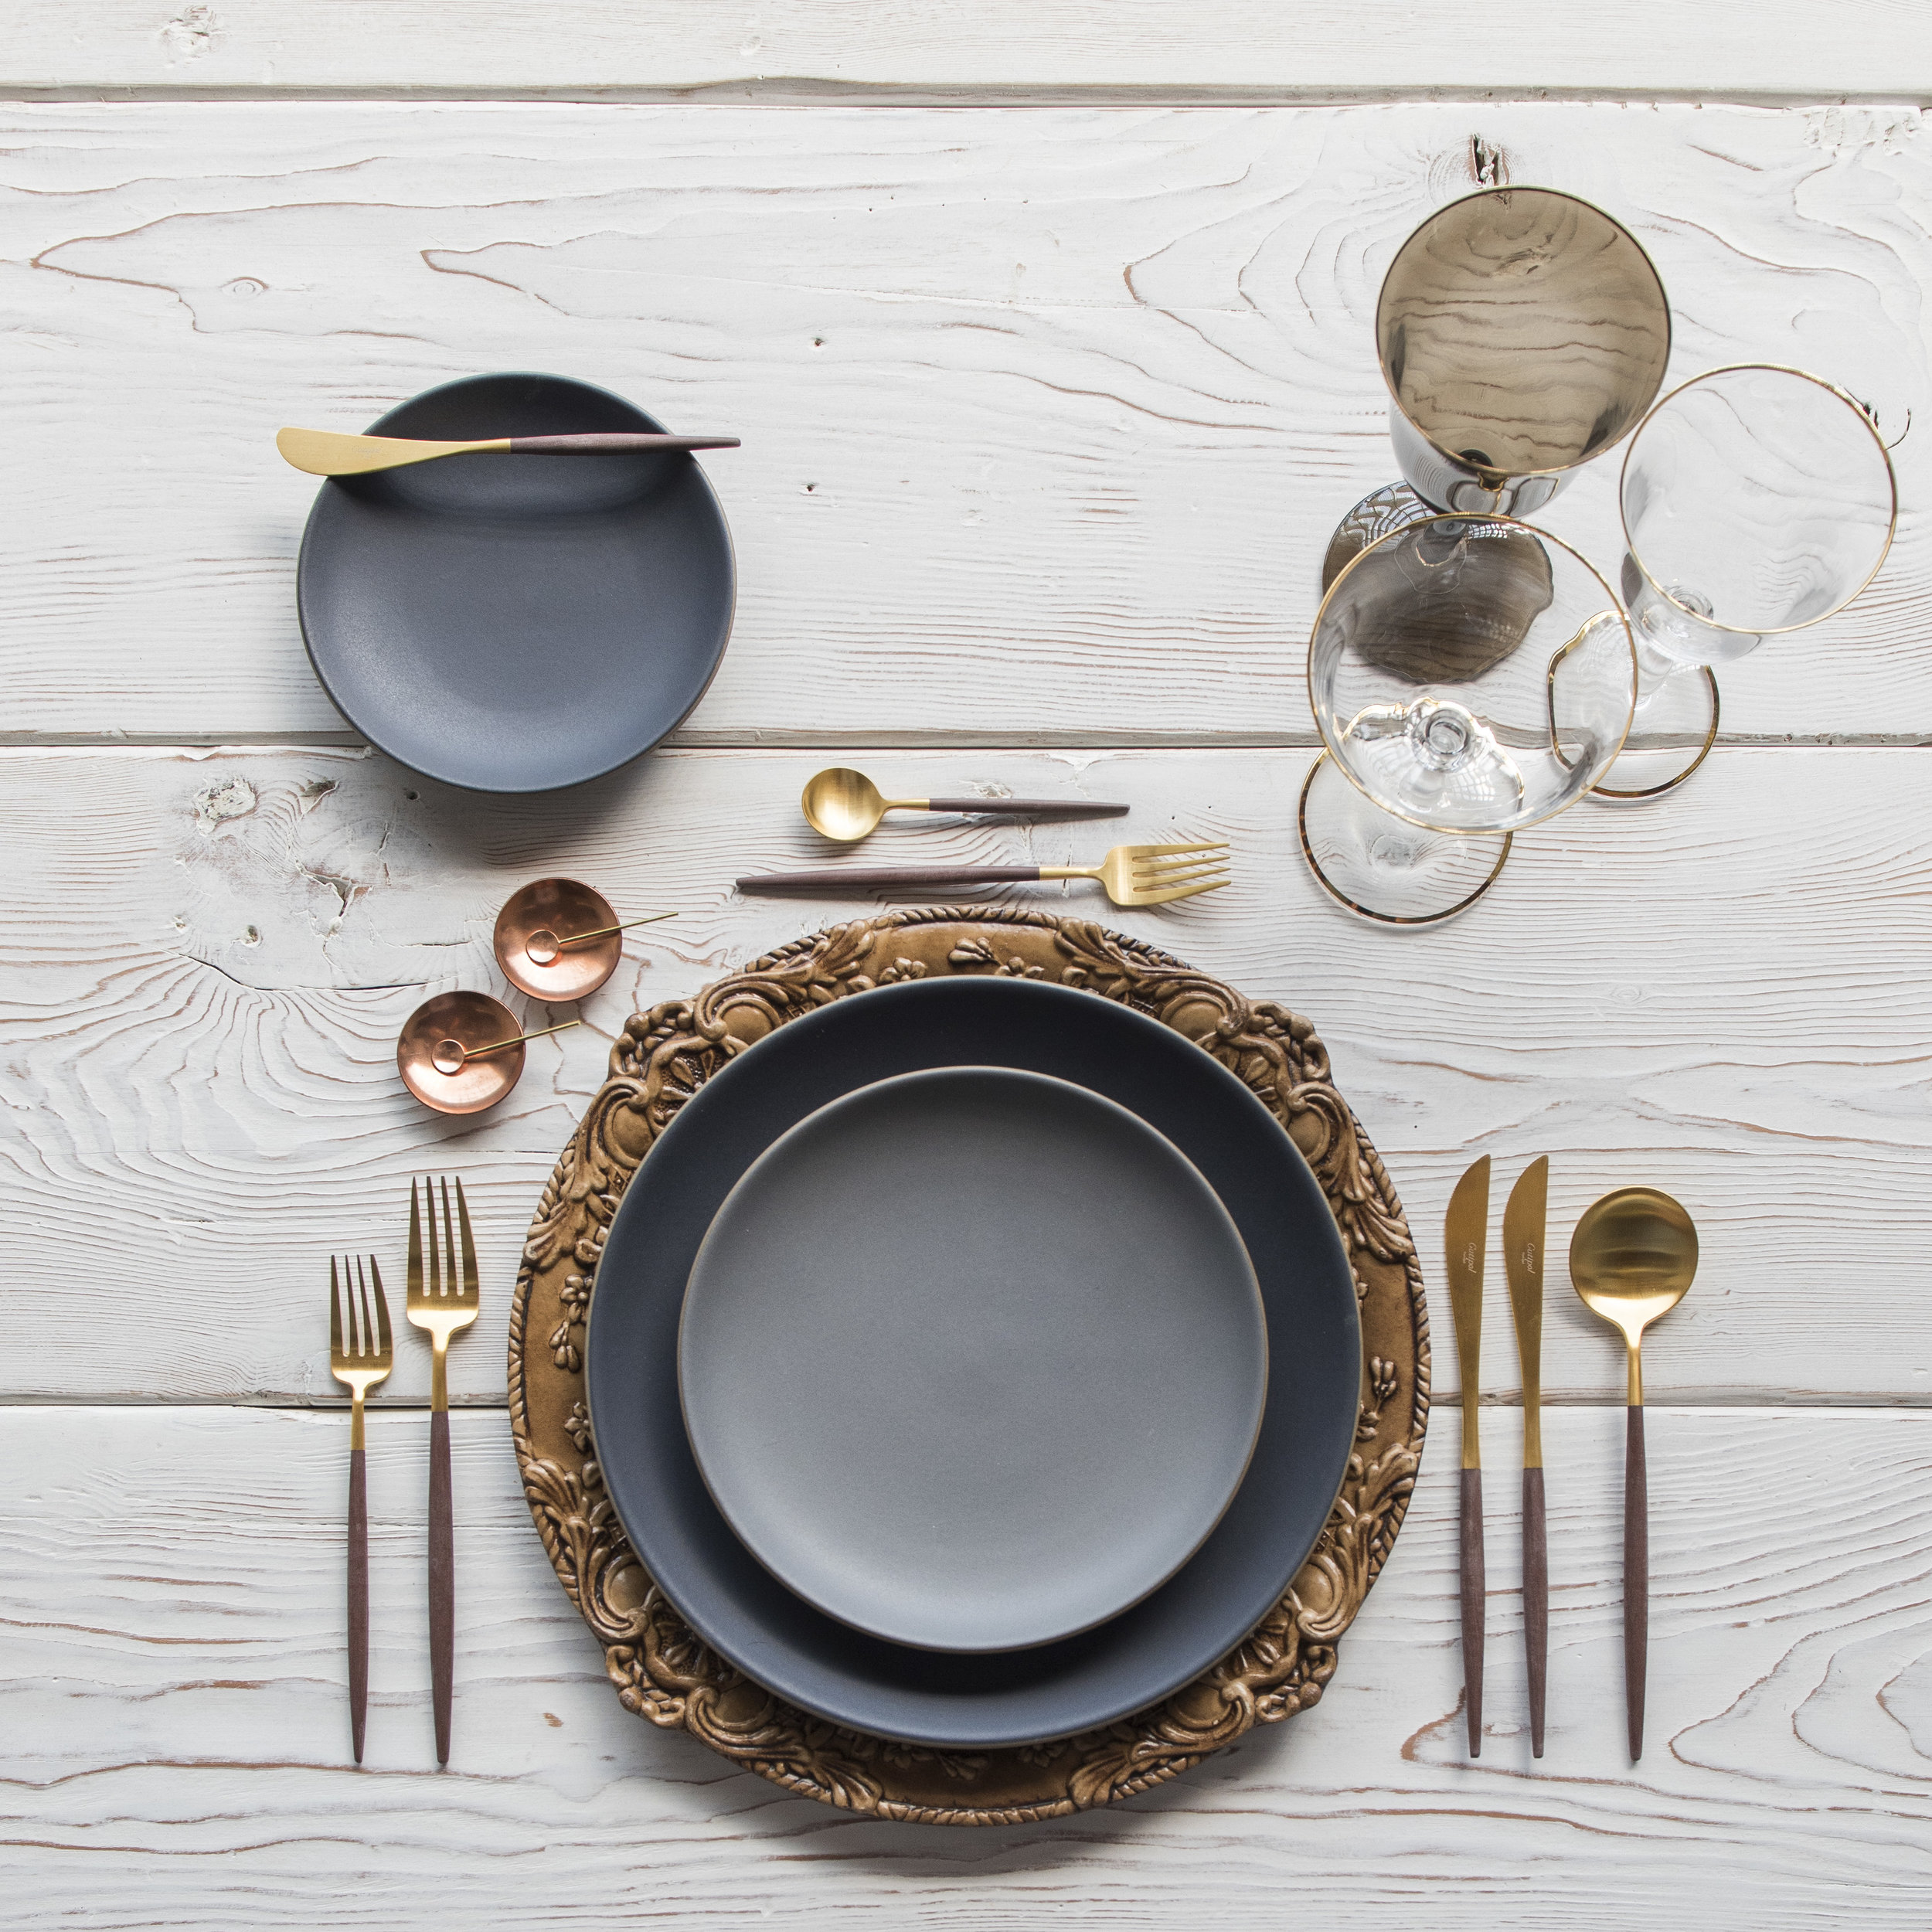 RENT: Verona Chargers in Walnut + Heath Ceramics in Indigo/Slate + Goa Flatware in Brushed 24k Gold/Wood + Chloe 24k Gold Rimmed Stemware + Chloe 24k Gold Rimmed Goblet in Smoke + 14k Gold Salt Cellars + Tiny Gold Spoons  SHOP: Verona Chargers in Walnut + Goa Flatware in Brushed 24k Gold/Wood + Chloe 24k Gold Rimmed Stemware + 14k Gold Salt Cellars + Tiny Gold Spoons